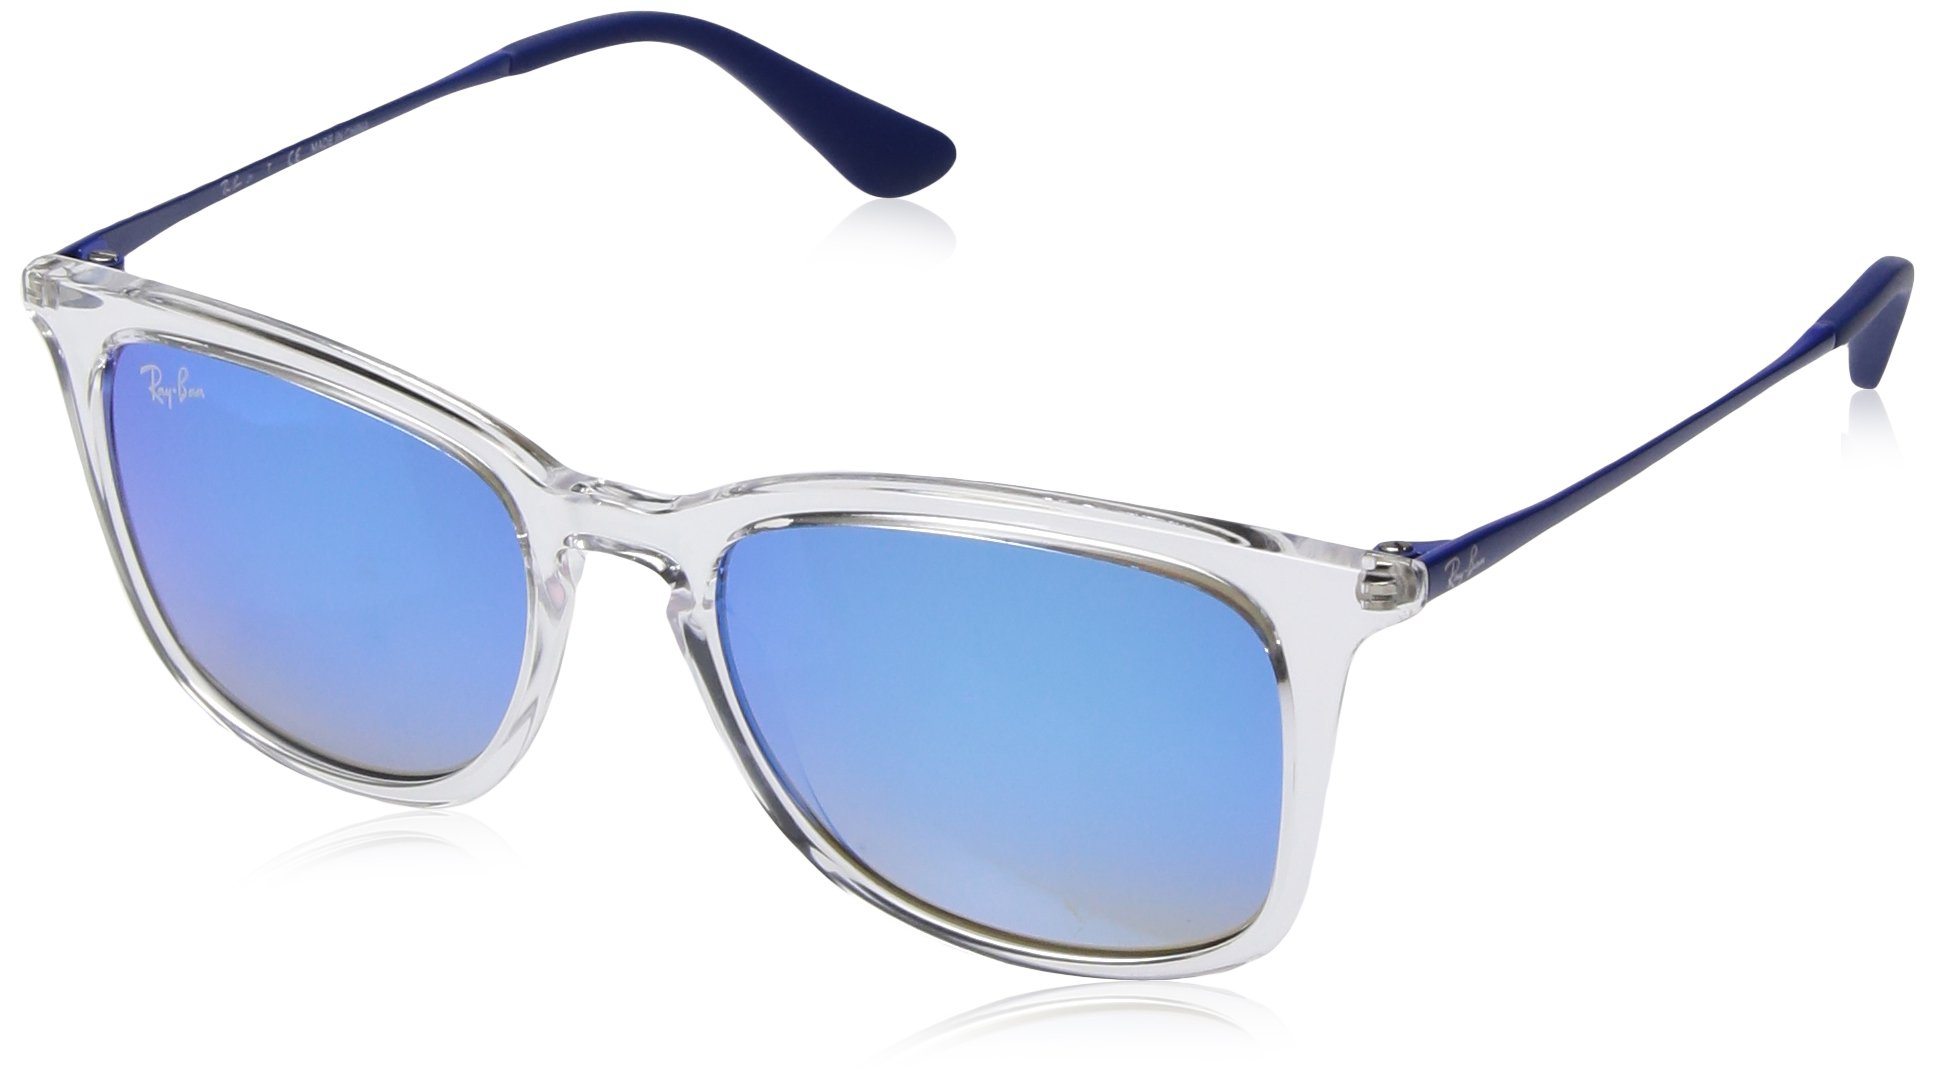 RAY-BAN JUNIOR Kids' RJ9063S Square Kids Sunglasses, Transparent/Blue Gradient Flash, 48 mm by RAY-BAN JUNIOR